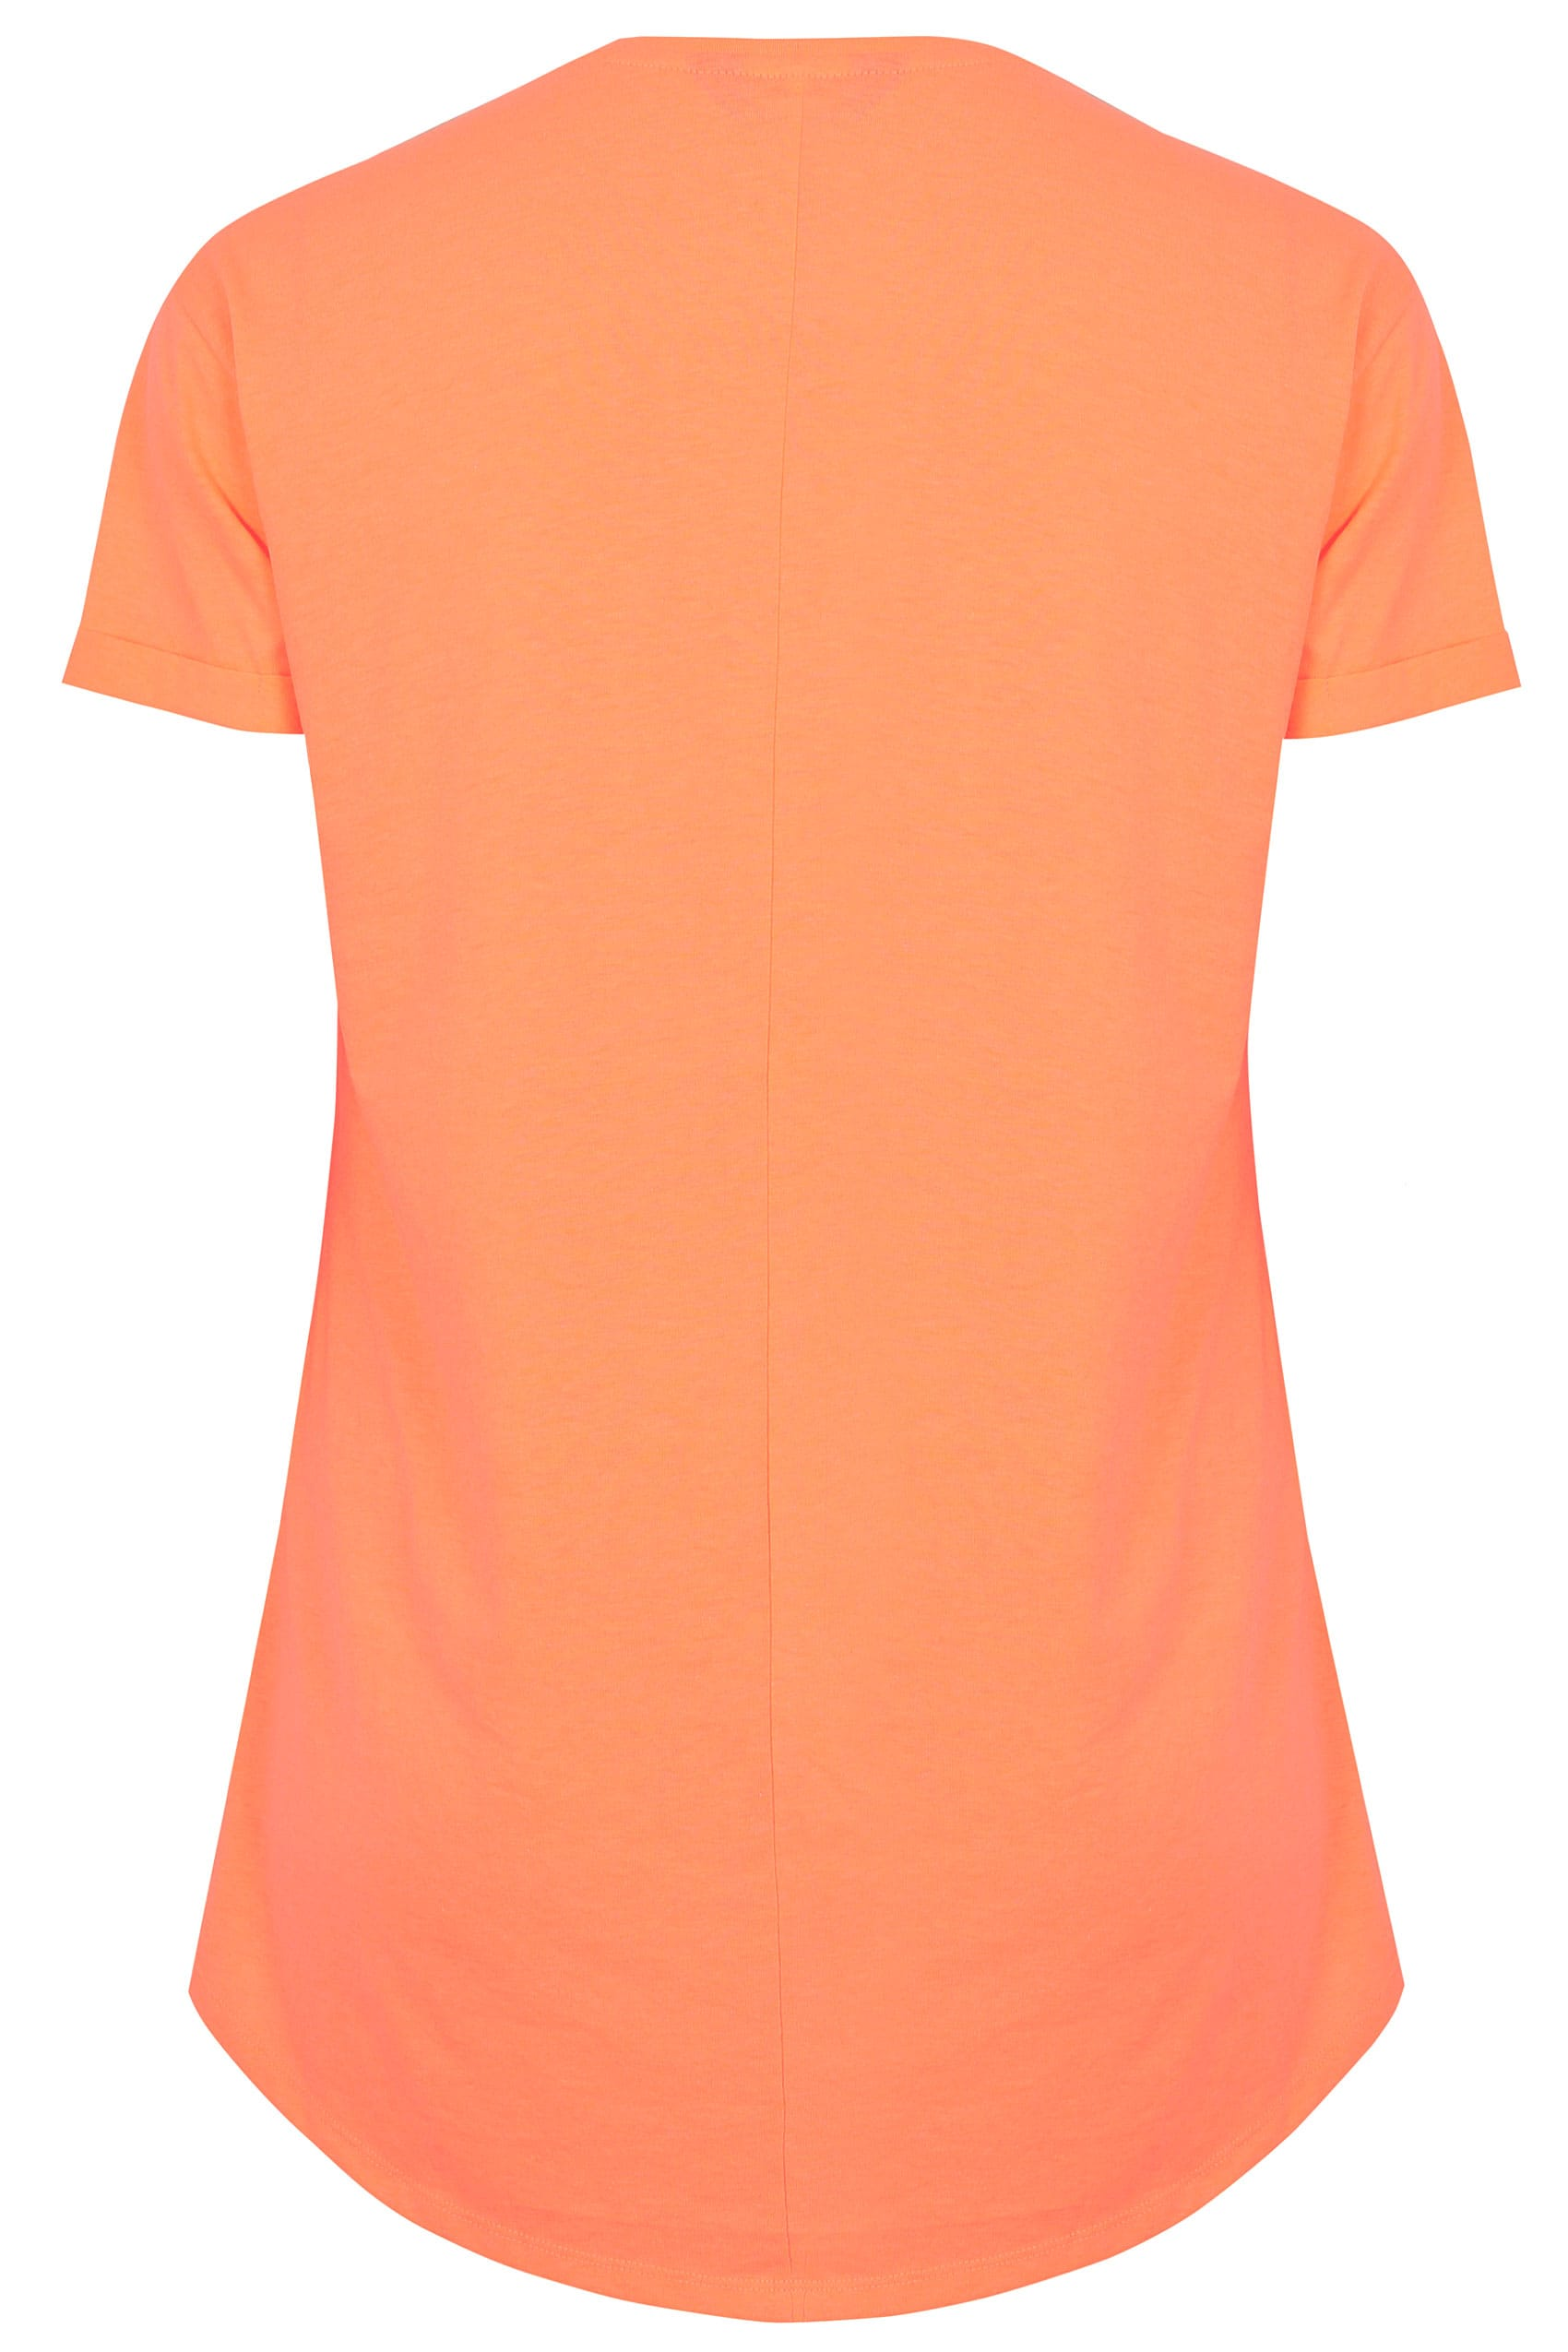 neon orange pocket t shirt with curved hem plus size 16 to 36. Black Bedroom Furniture Sets. Home Design Ideas